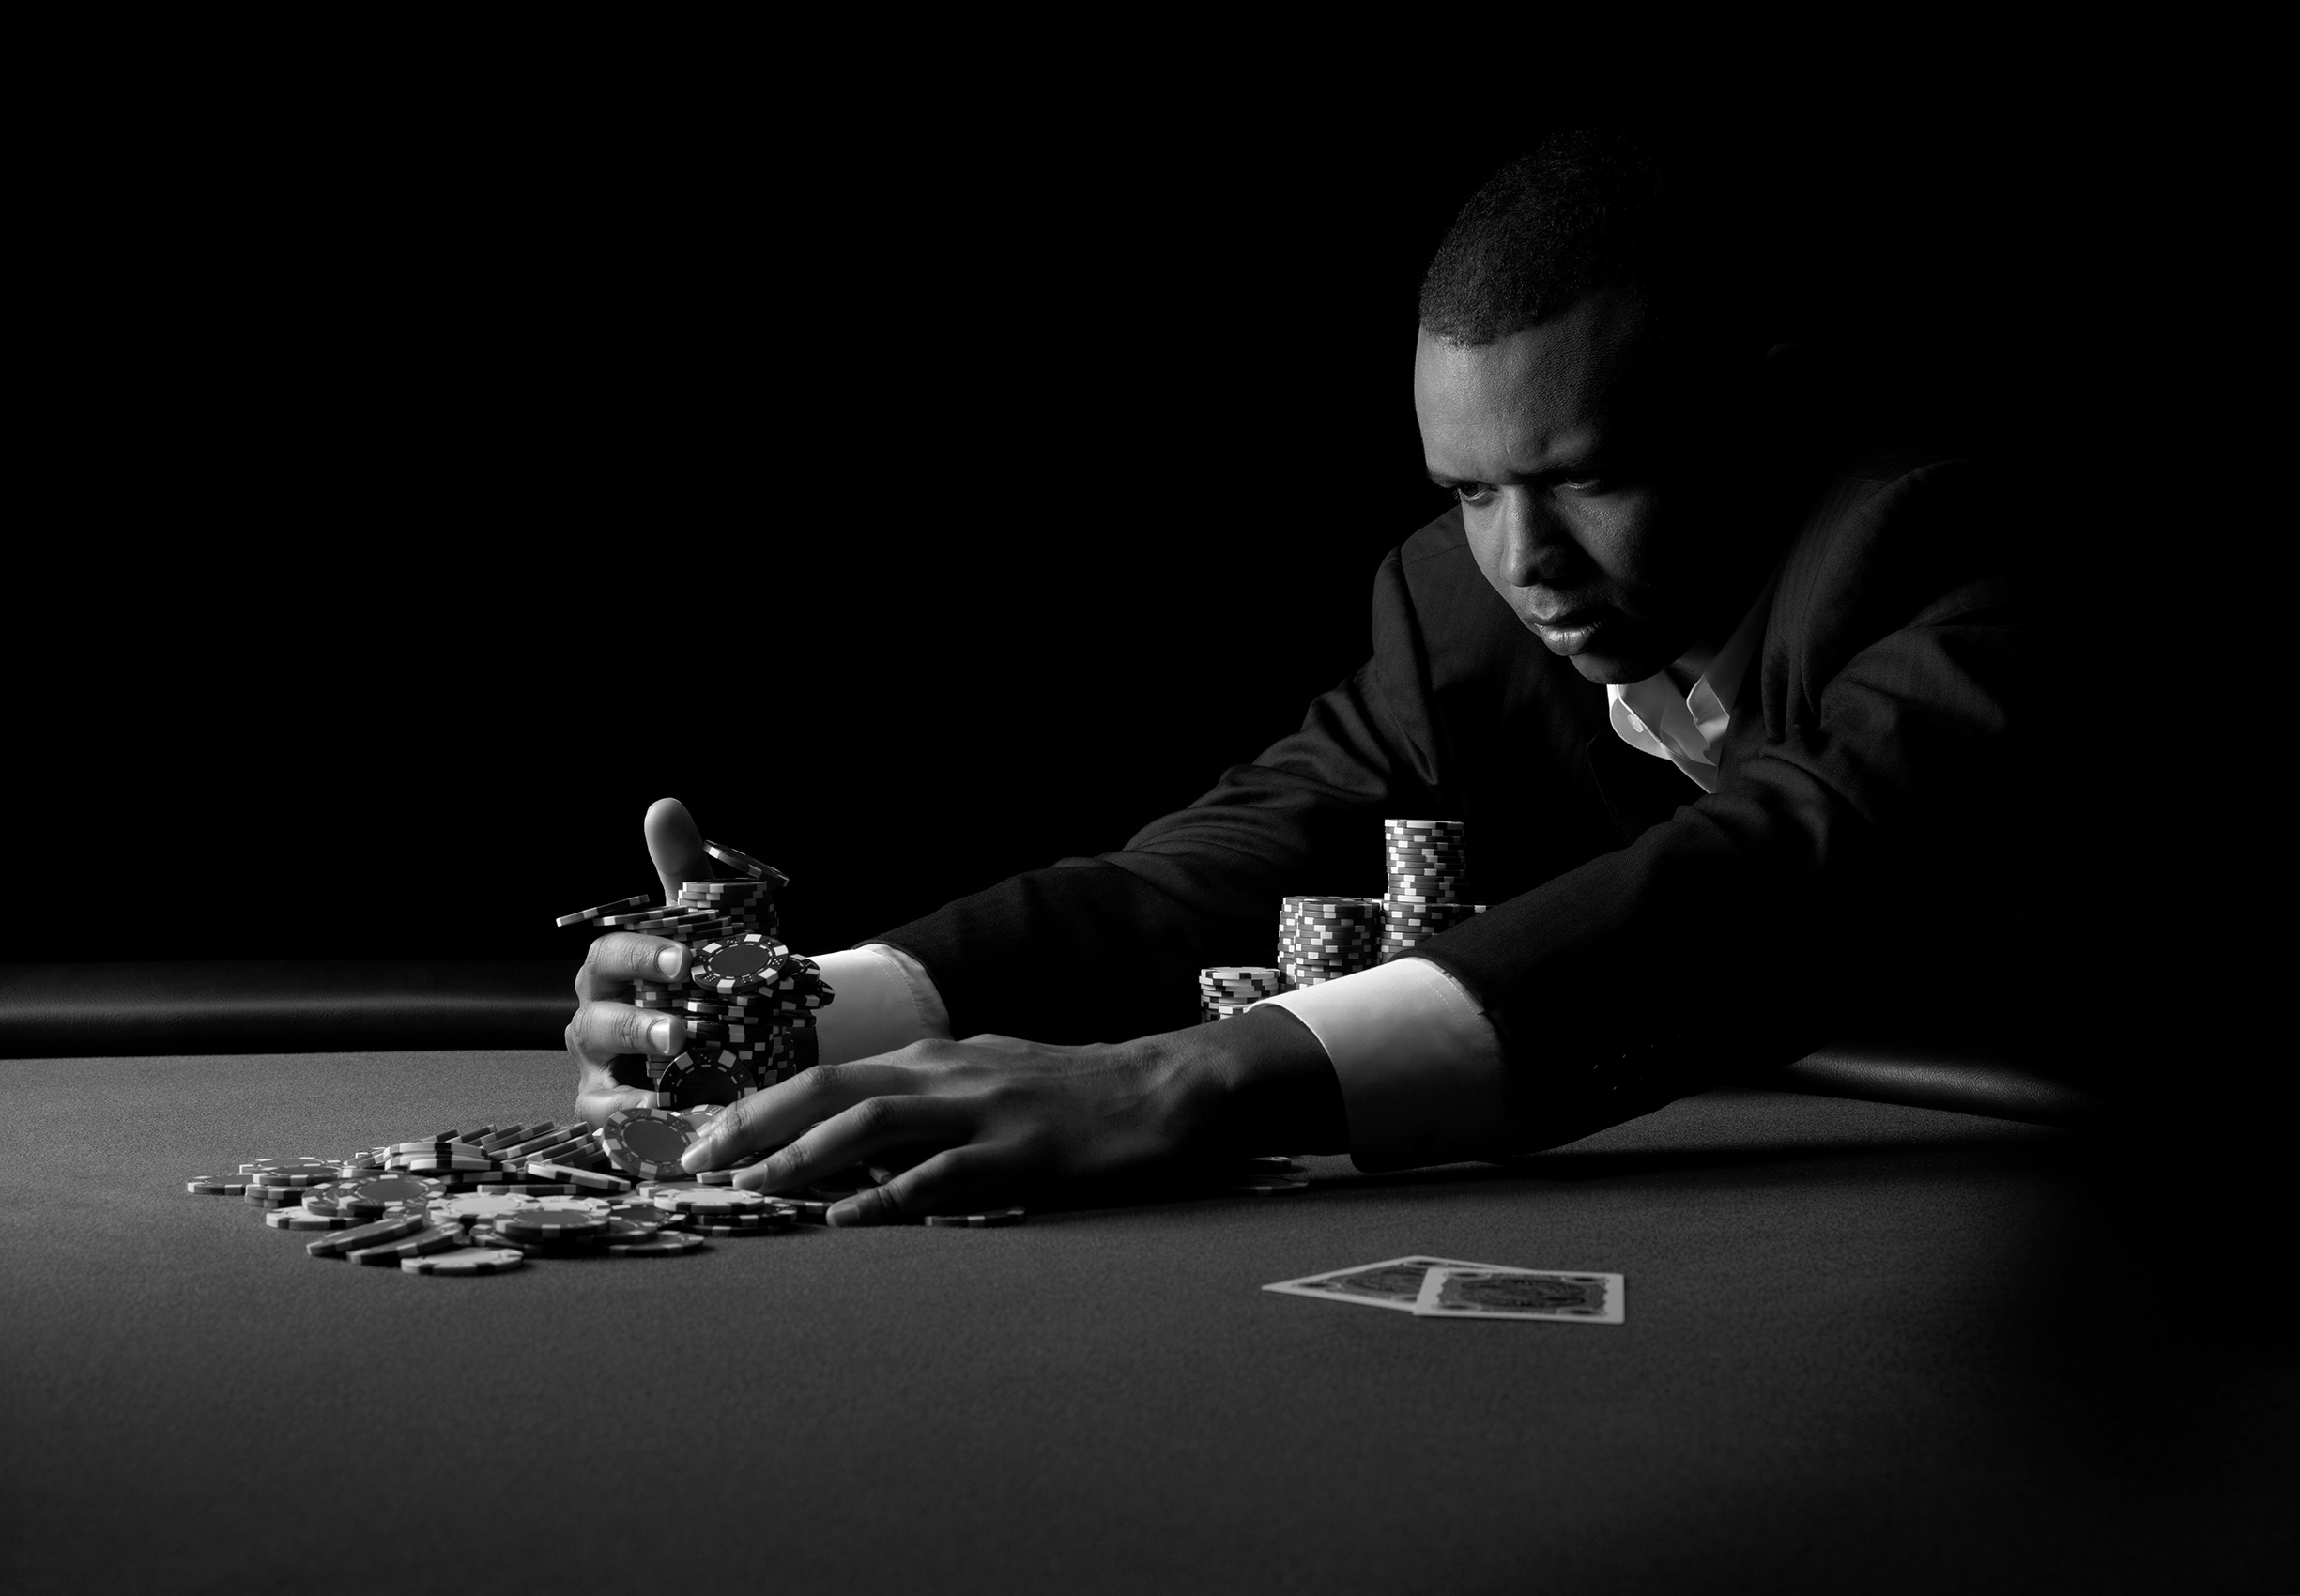 Phil Ivey for Full Tilt Poker / Photographer: ©Joel Lipton